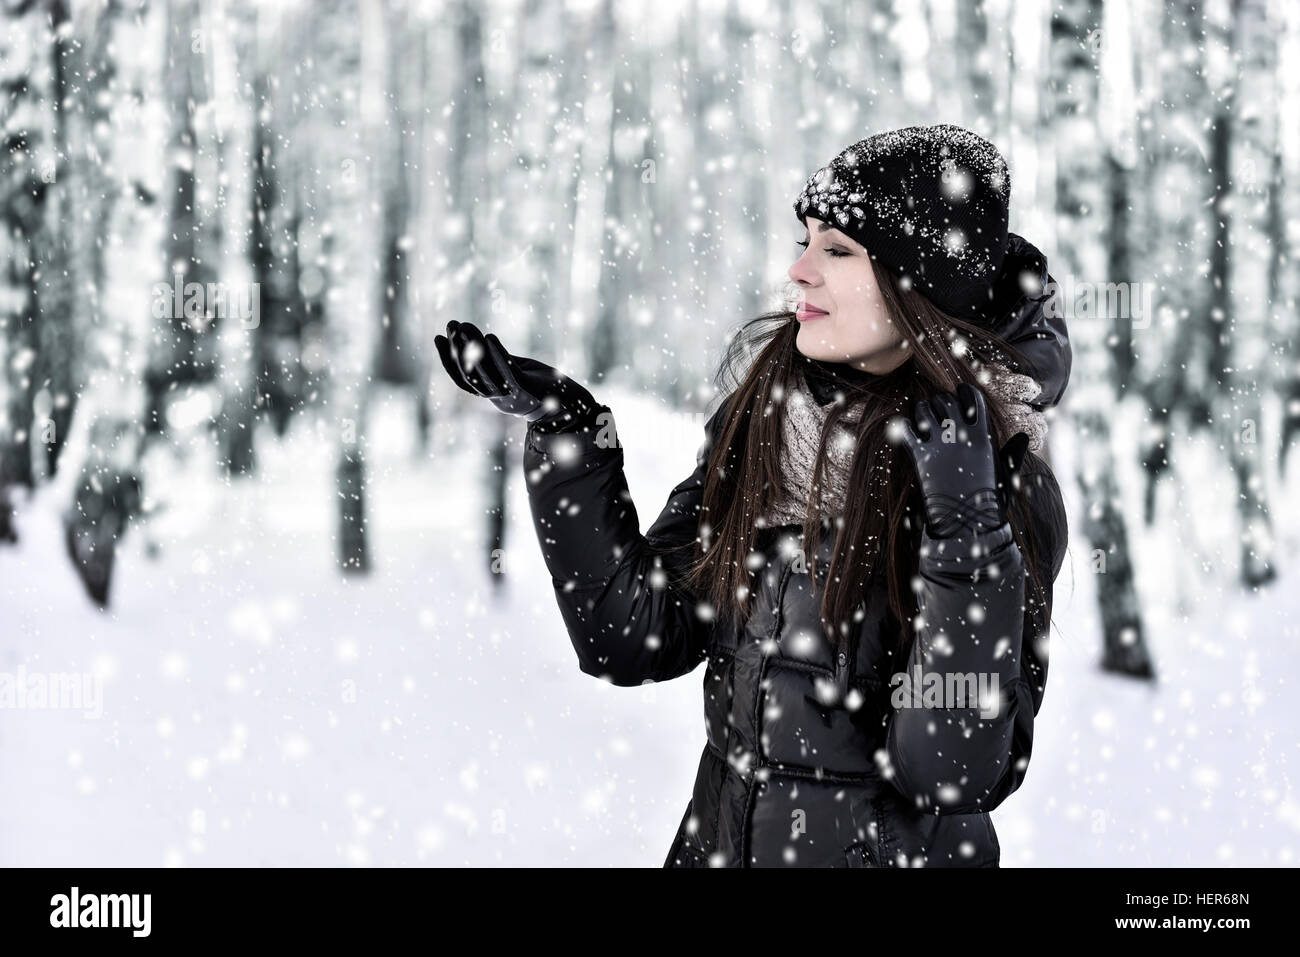 The girl with dark long hair in the winter park in snowfall - Stock Image